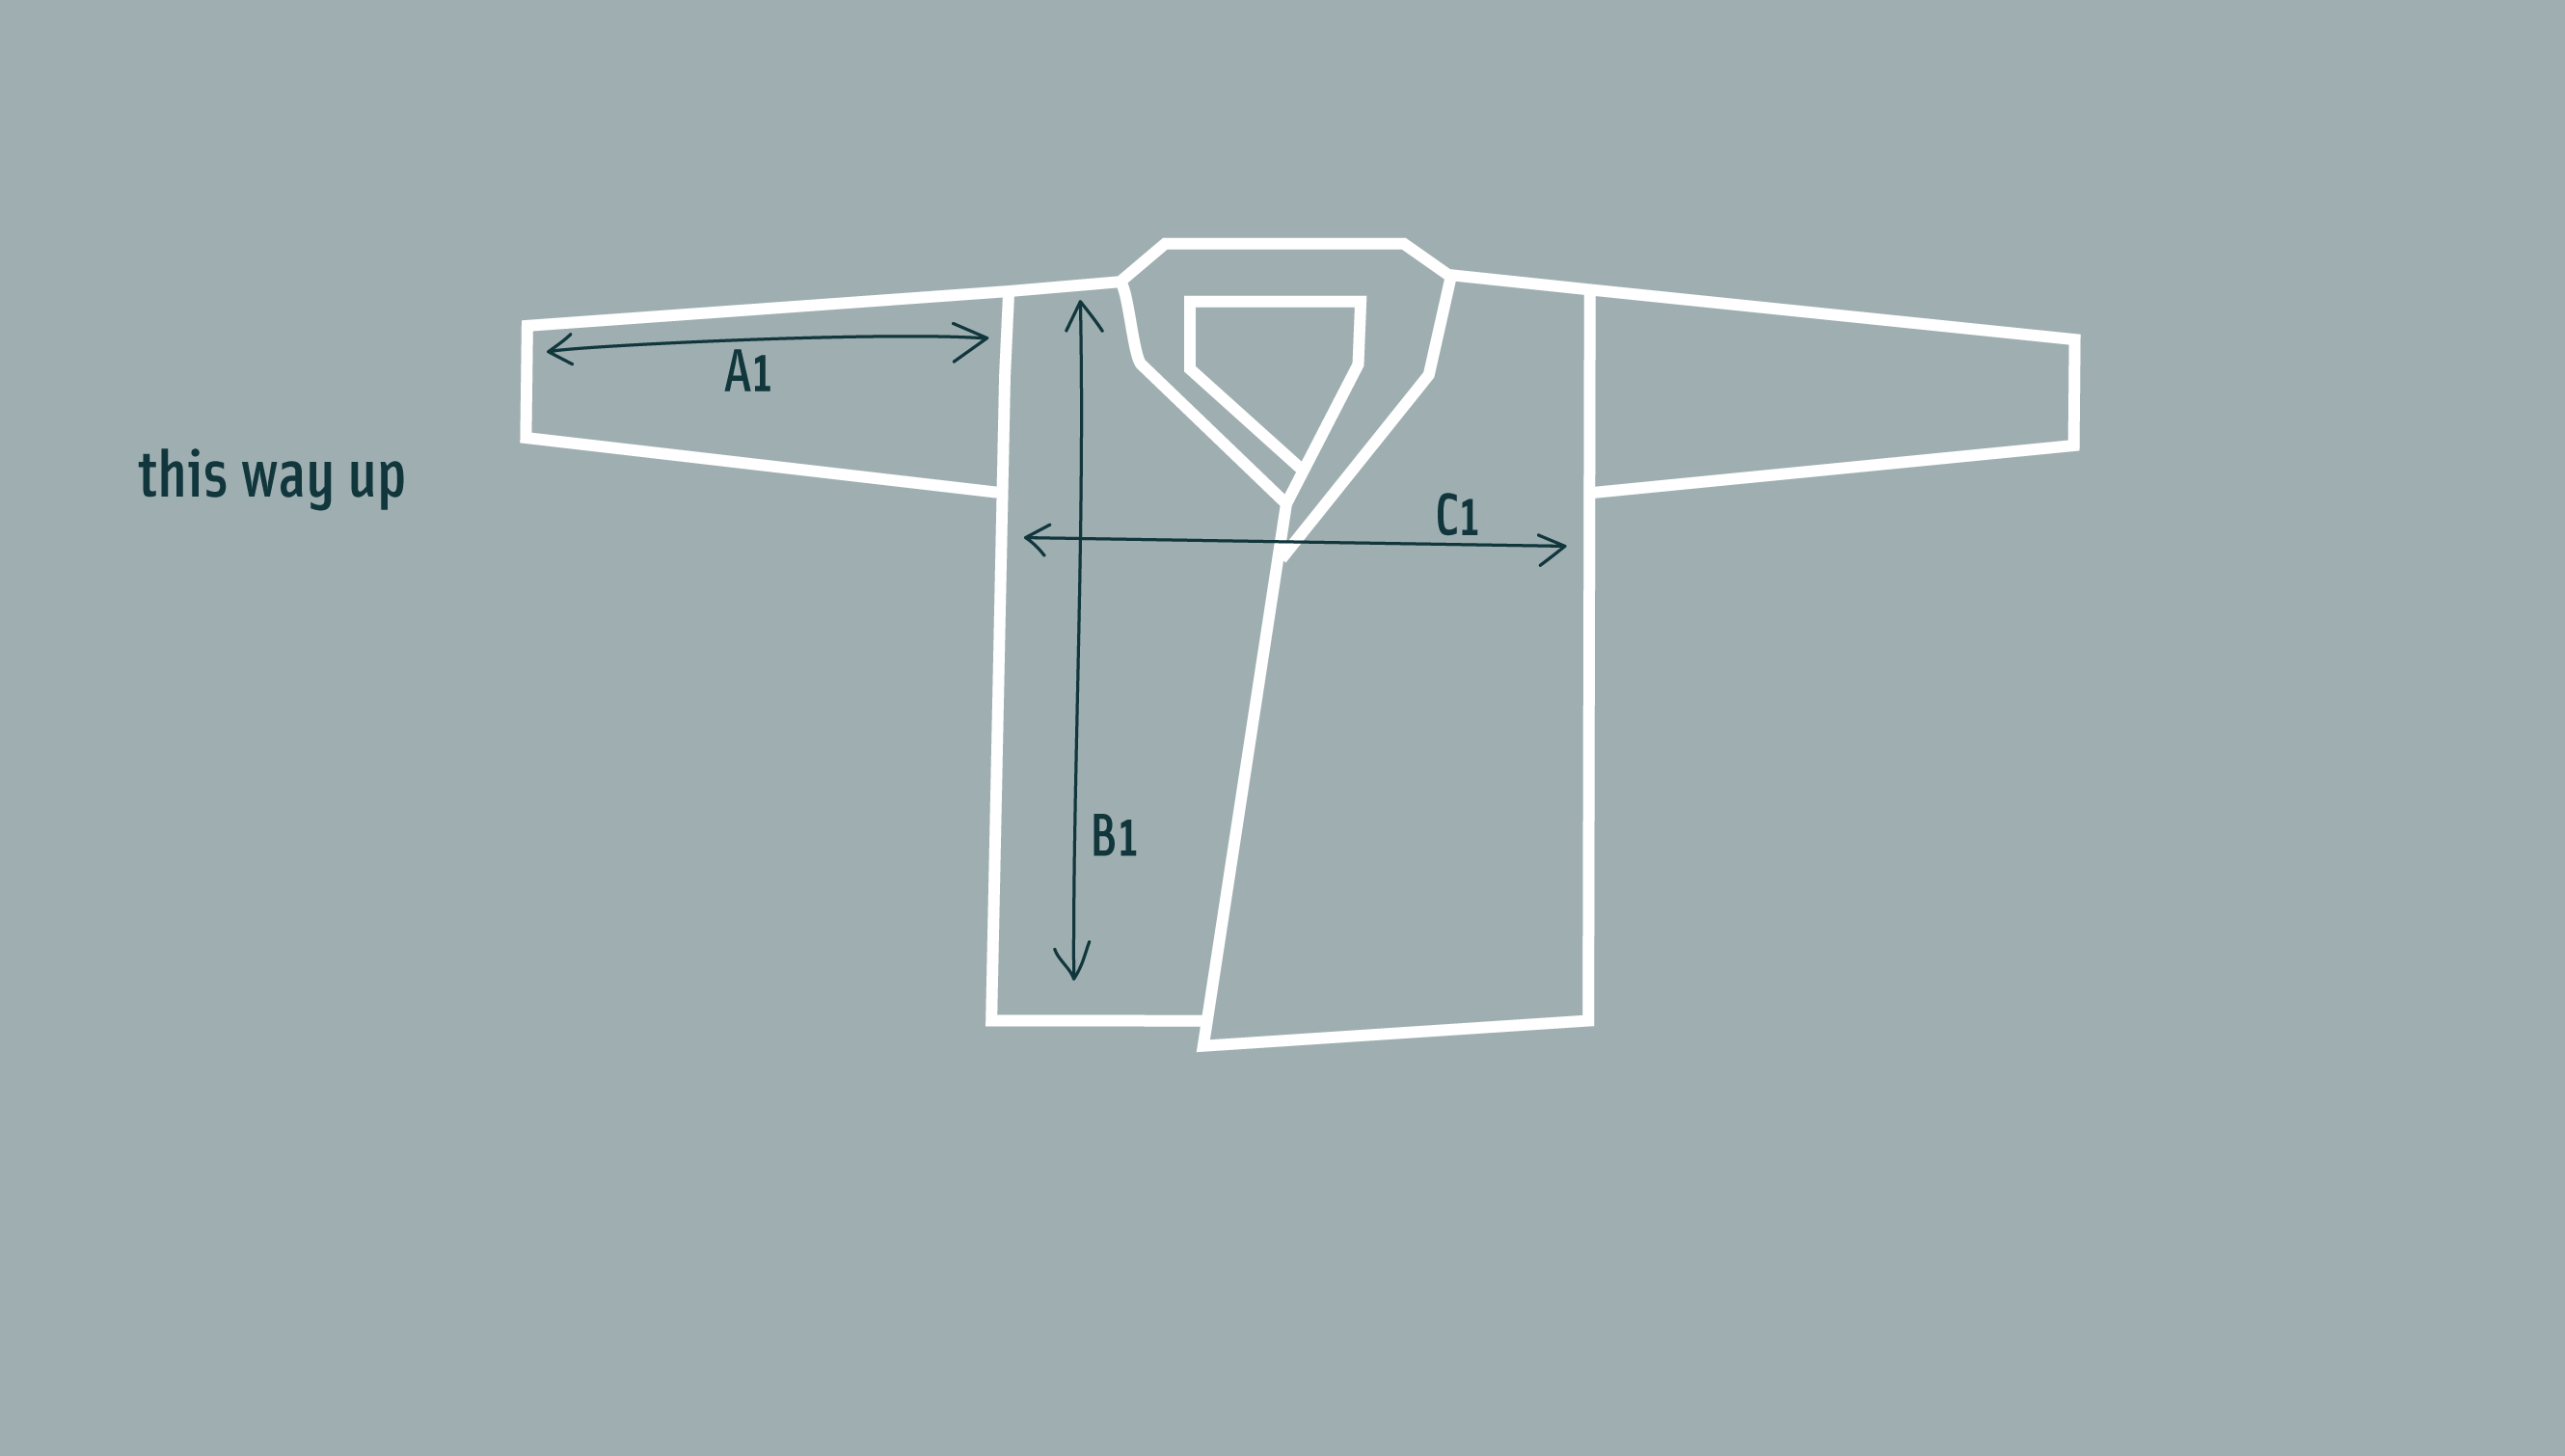 Diagram of rigg long vaarie jacket laid flat to show shape